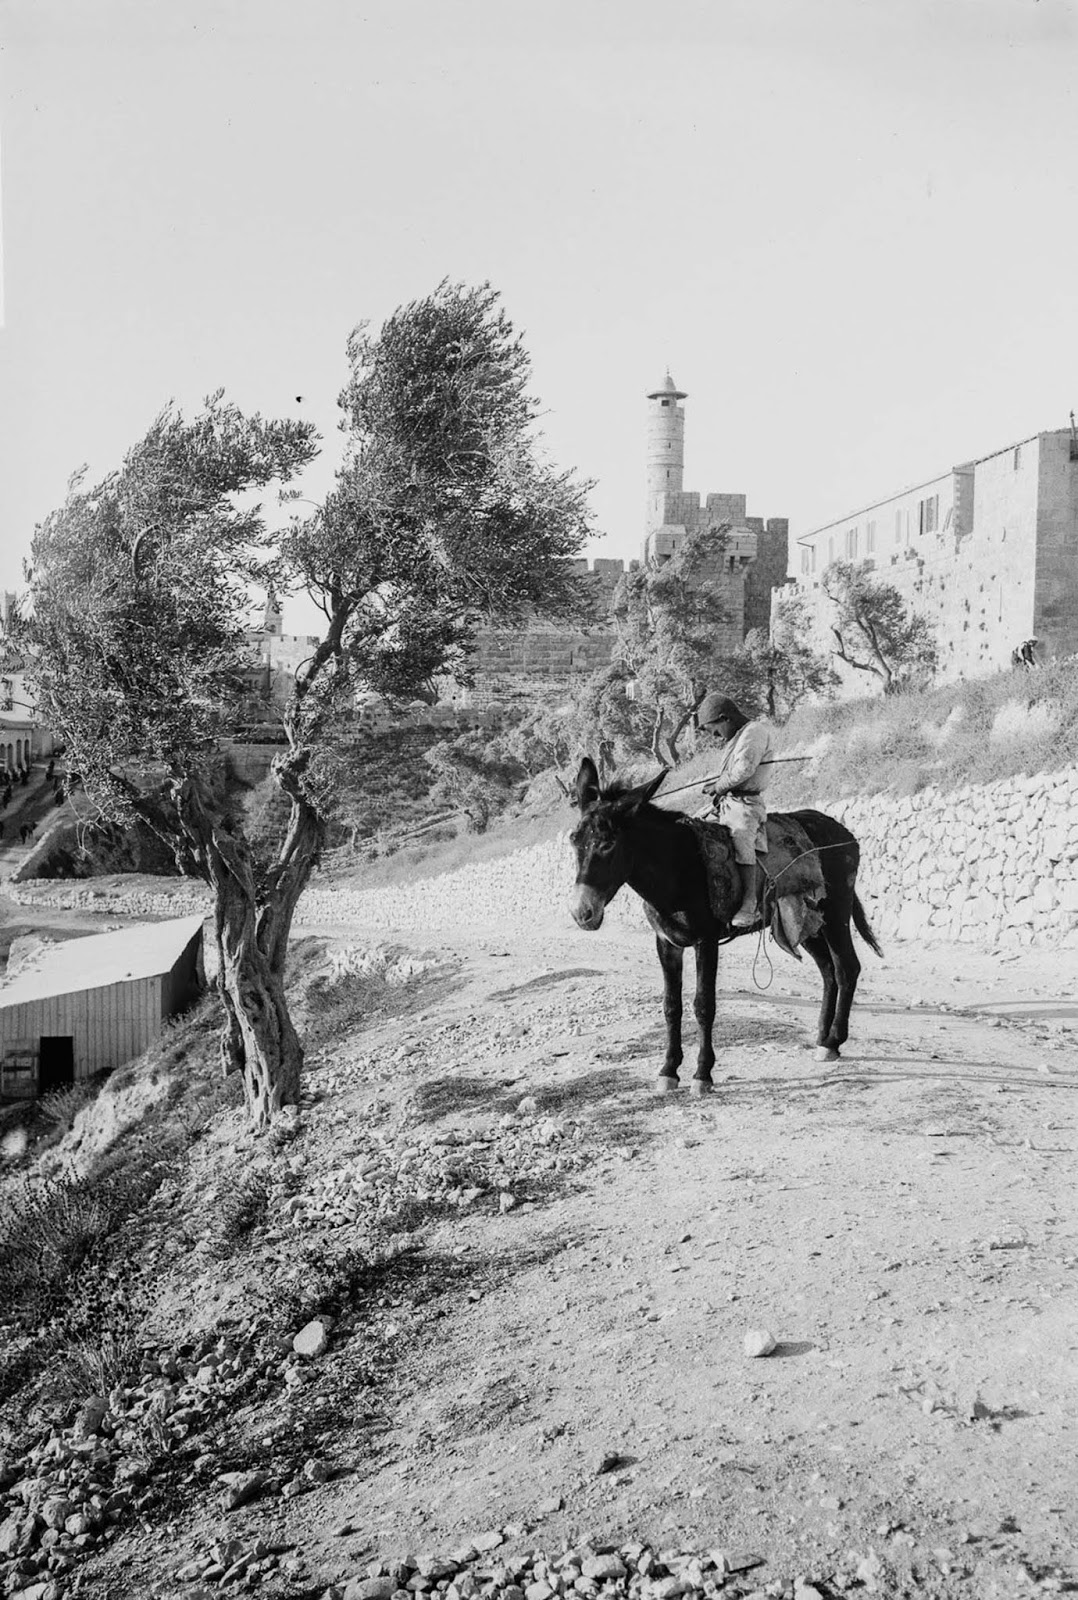 A local kid. Jerusalem, c. 1900.